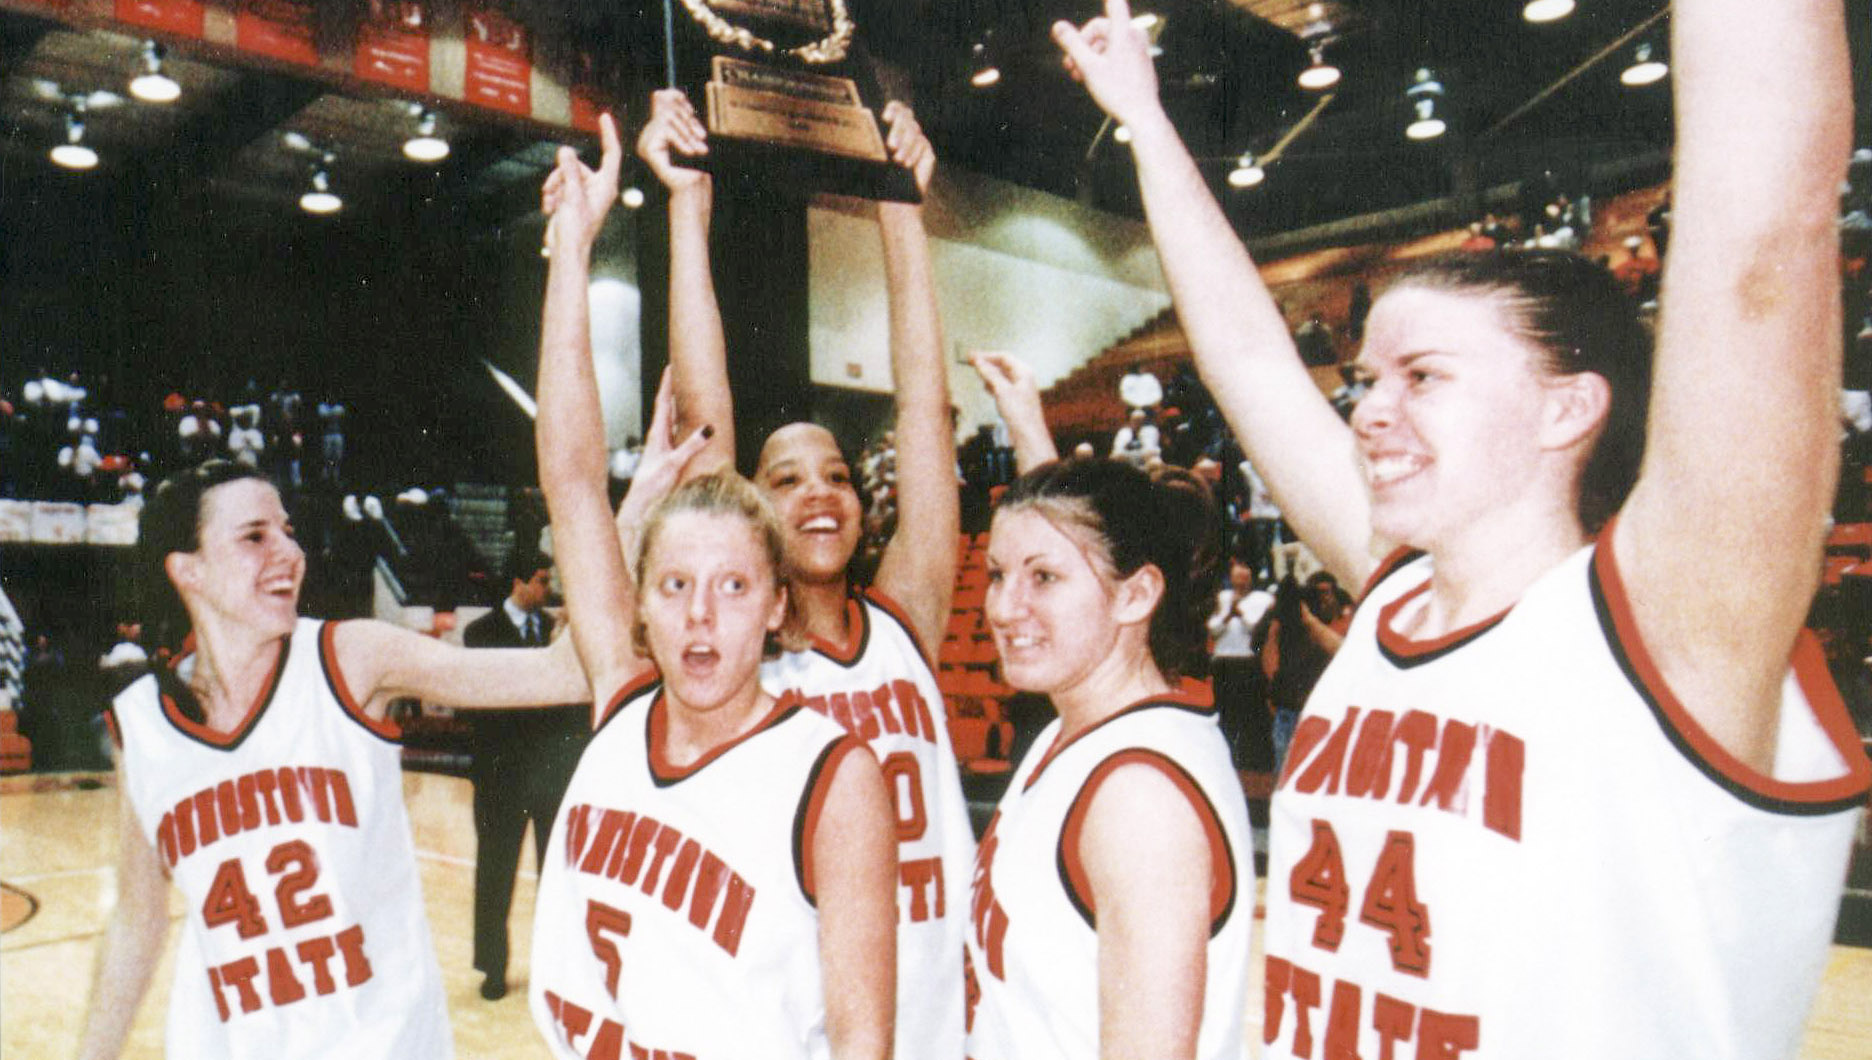 1997-98 YSU Women's Basketball Team